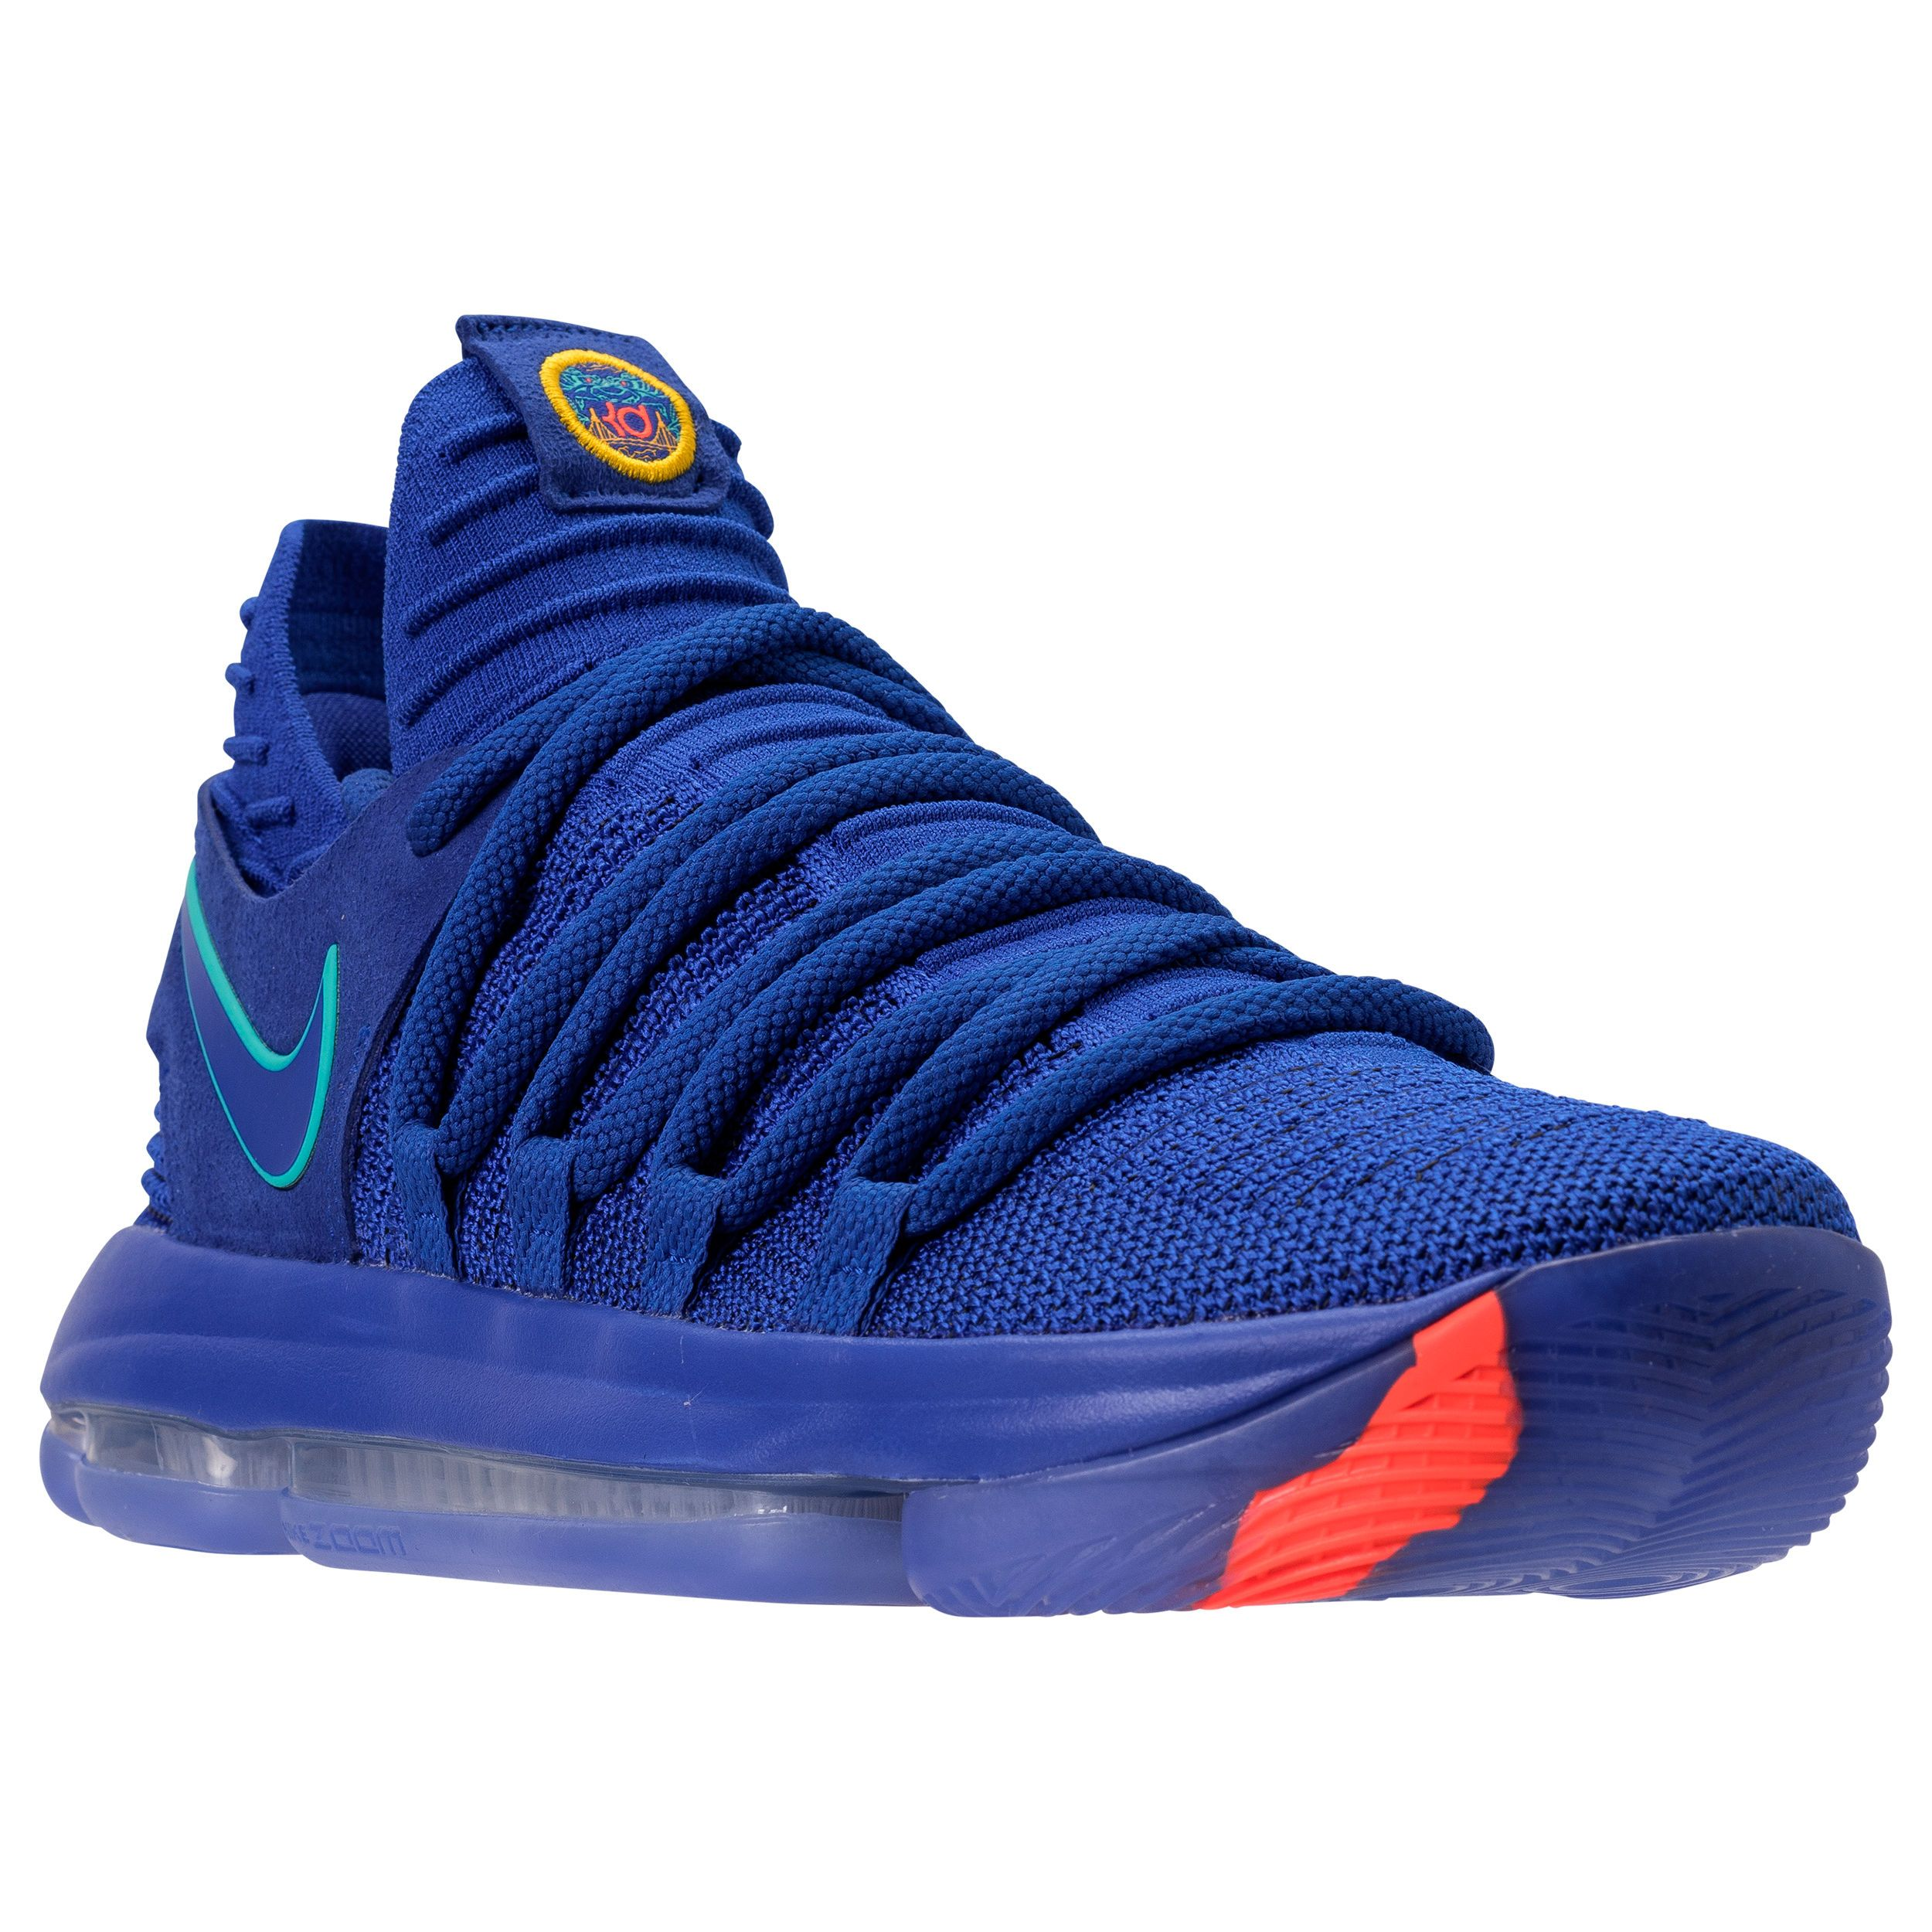 meet 86c37 fa368 Nike Zoom KD10 EP (897816-402) City Edition -Chinatown USD 155 HKD